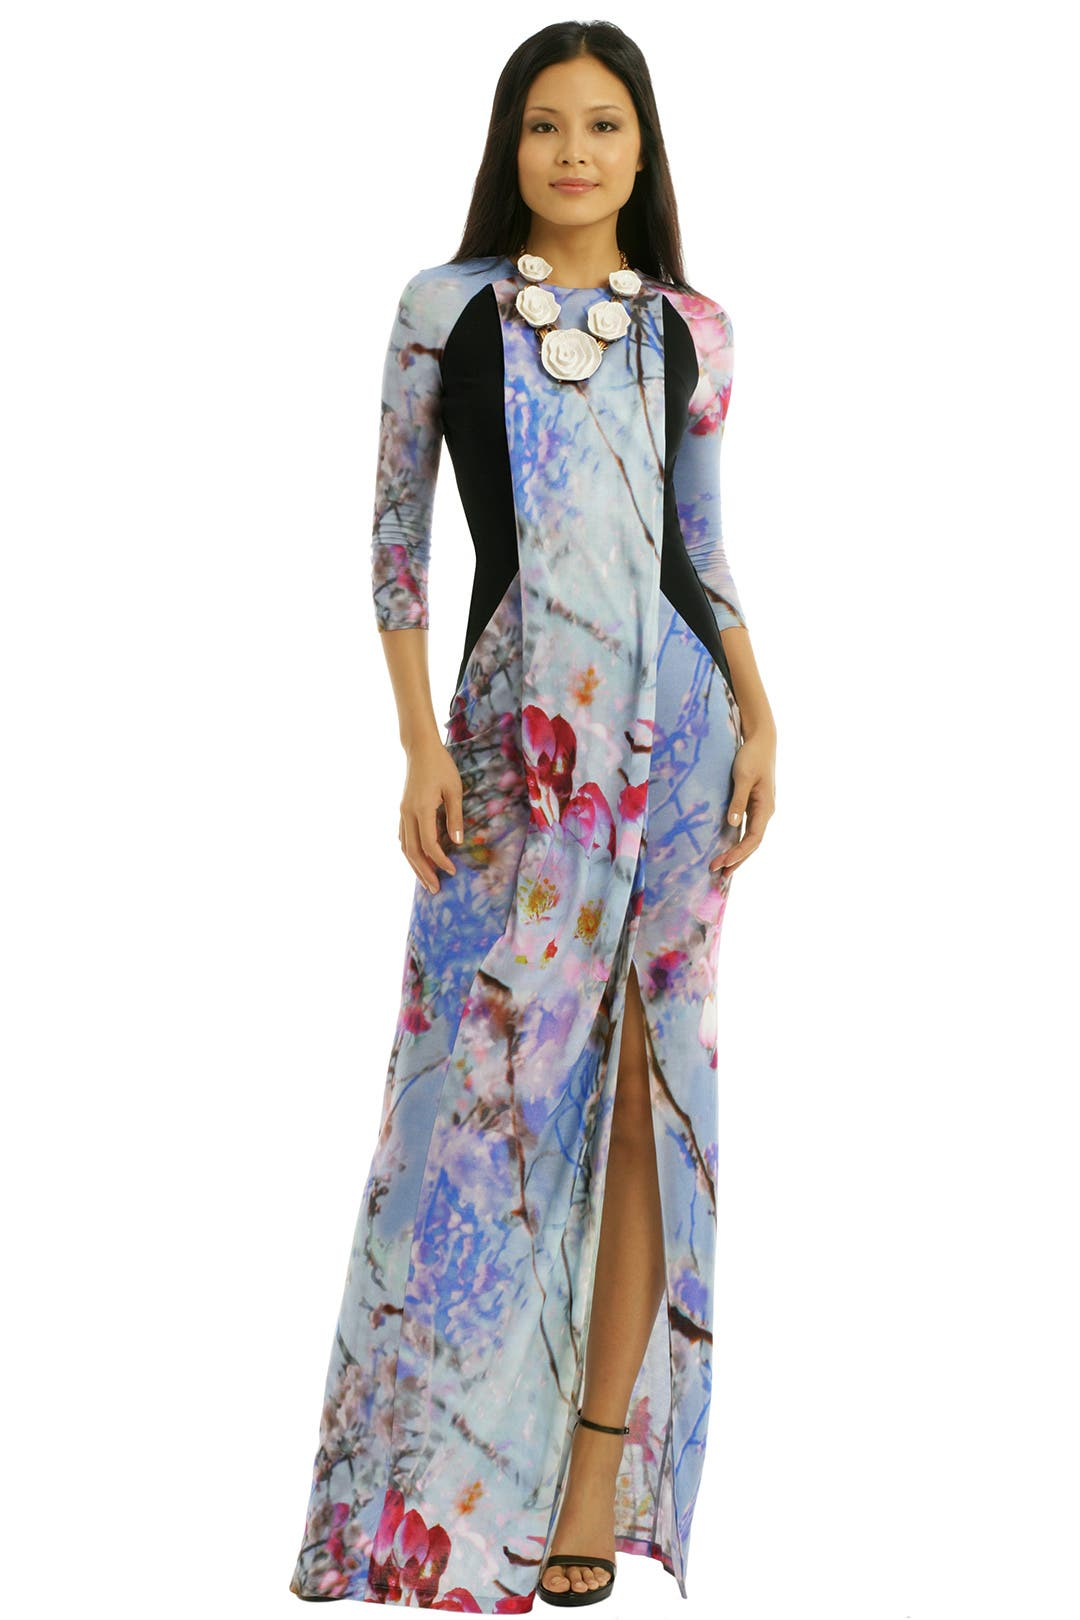 Go Geisha Gown by Matthew Williamson